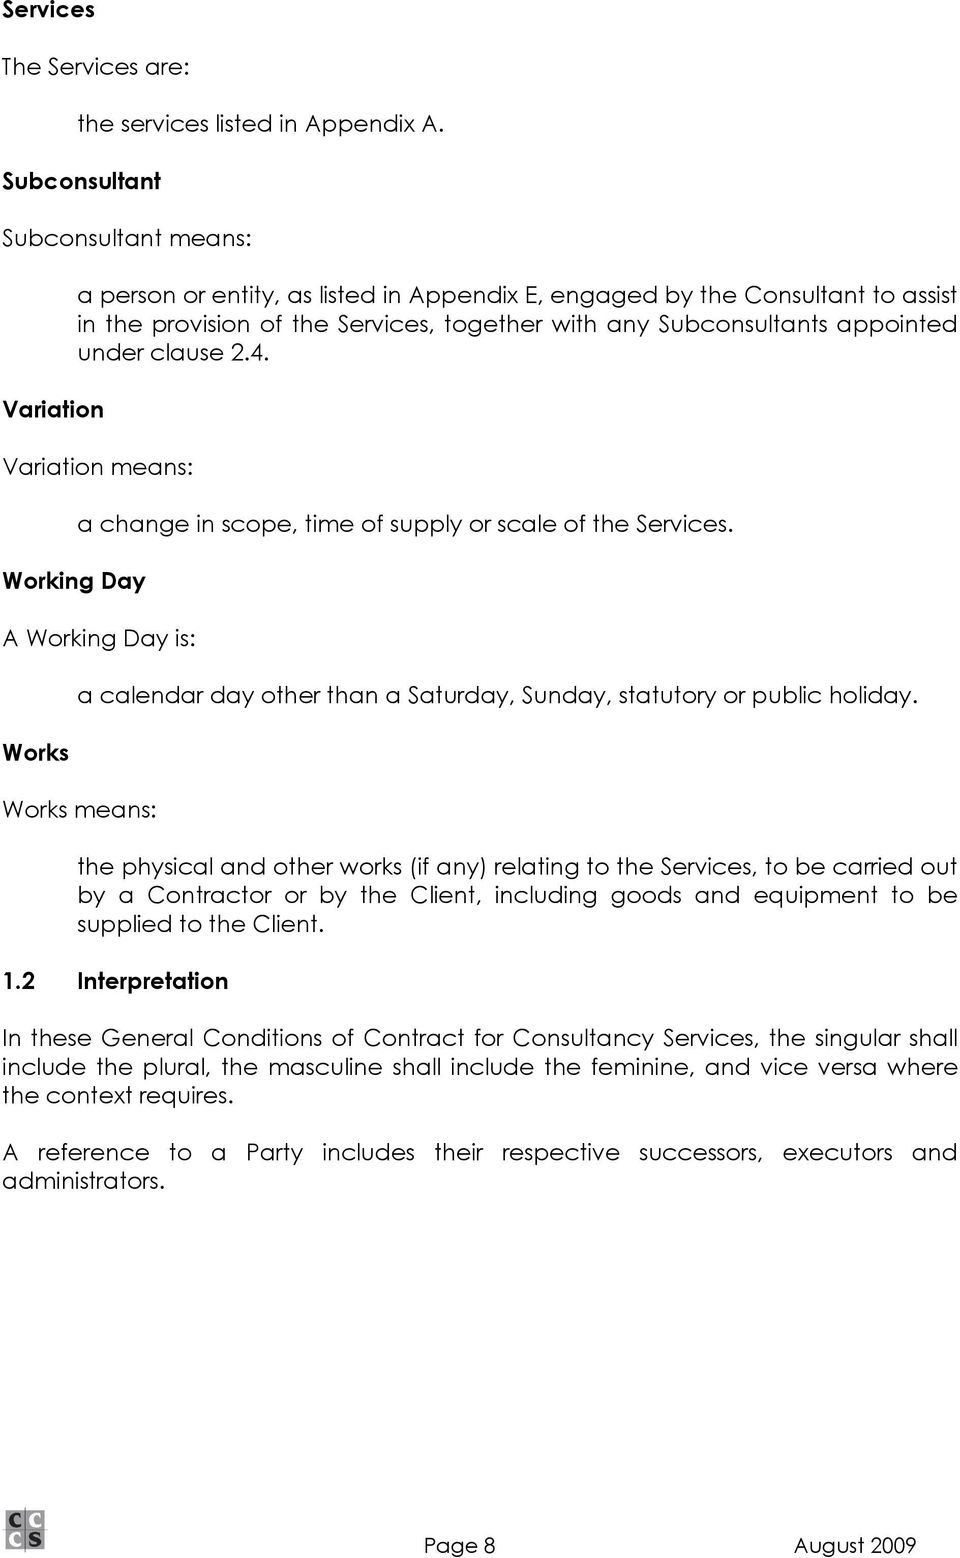 appointed under clause 2.4. Variation means: Working Day a change in scope, time of supply or scale of the Services.